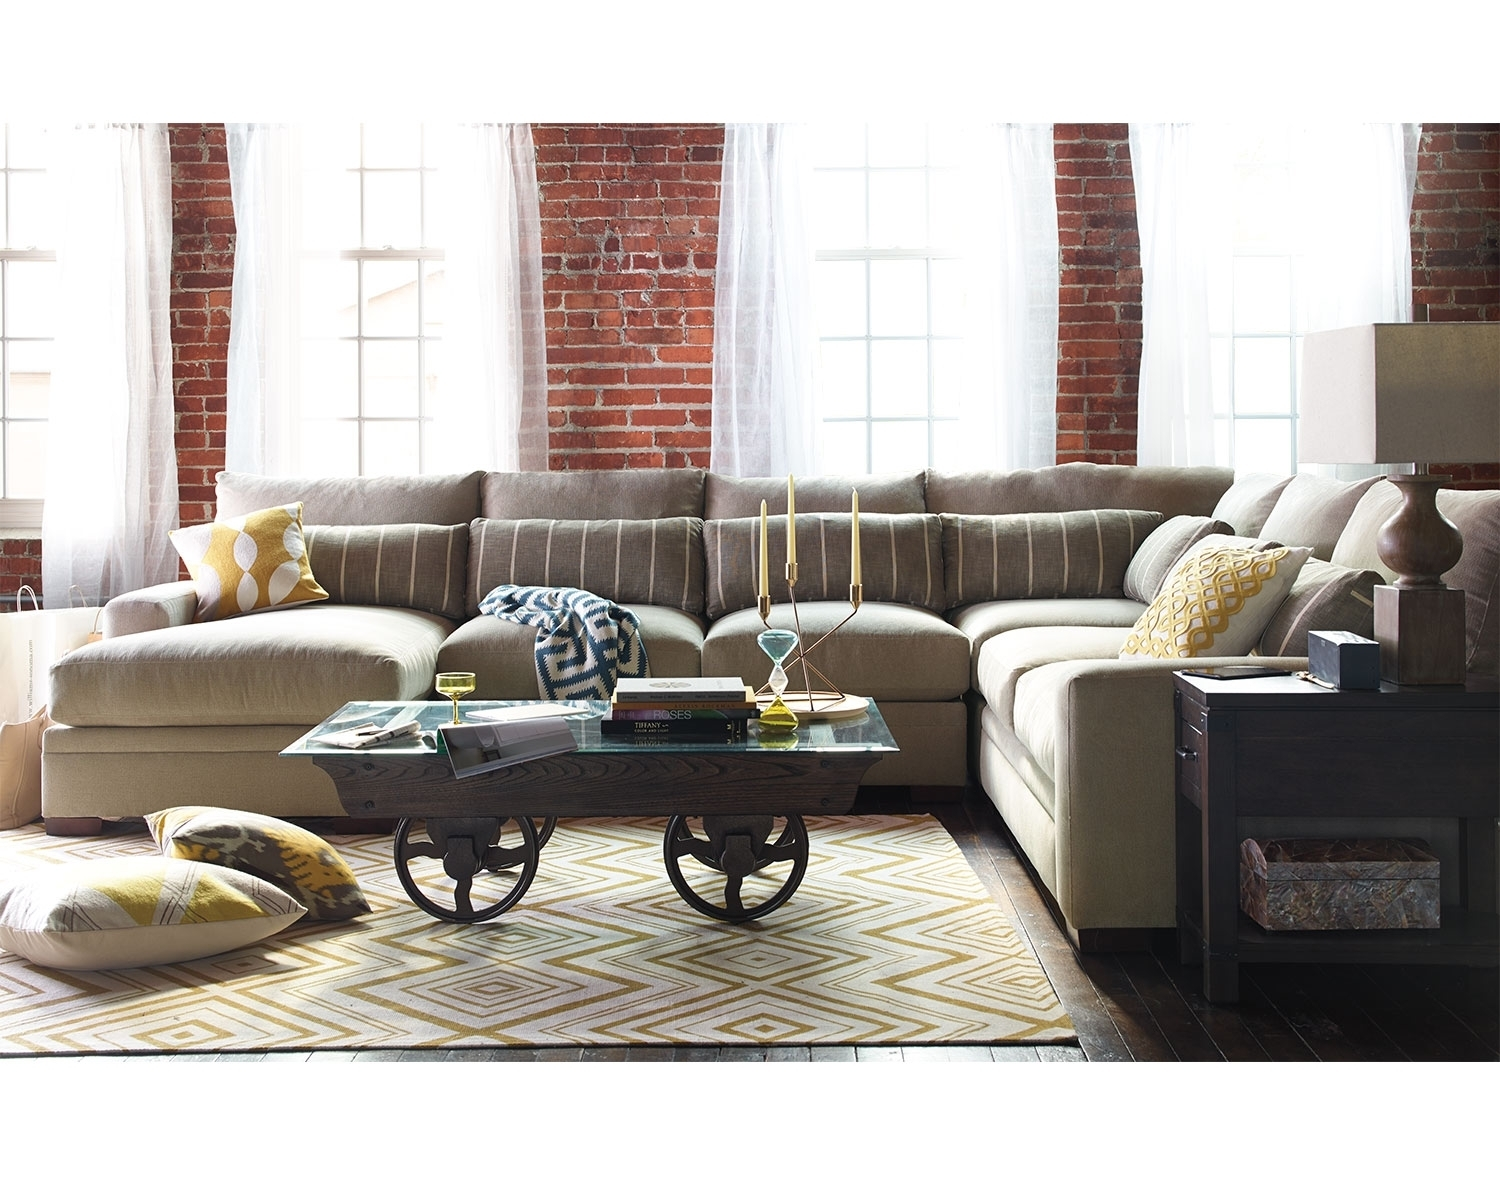 My Favorite!!! But It Cost $2999!!!!!!! The Ventura Collection Intended For Kansas City Sectional Sofas (View 8 of 10)